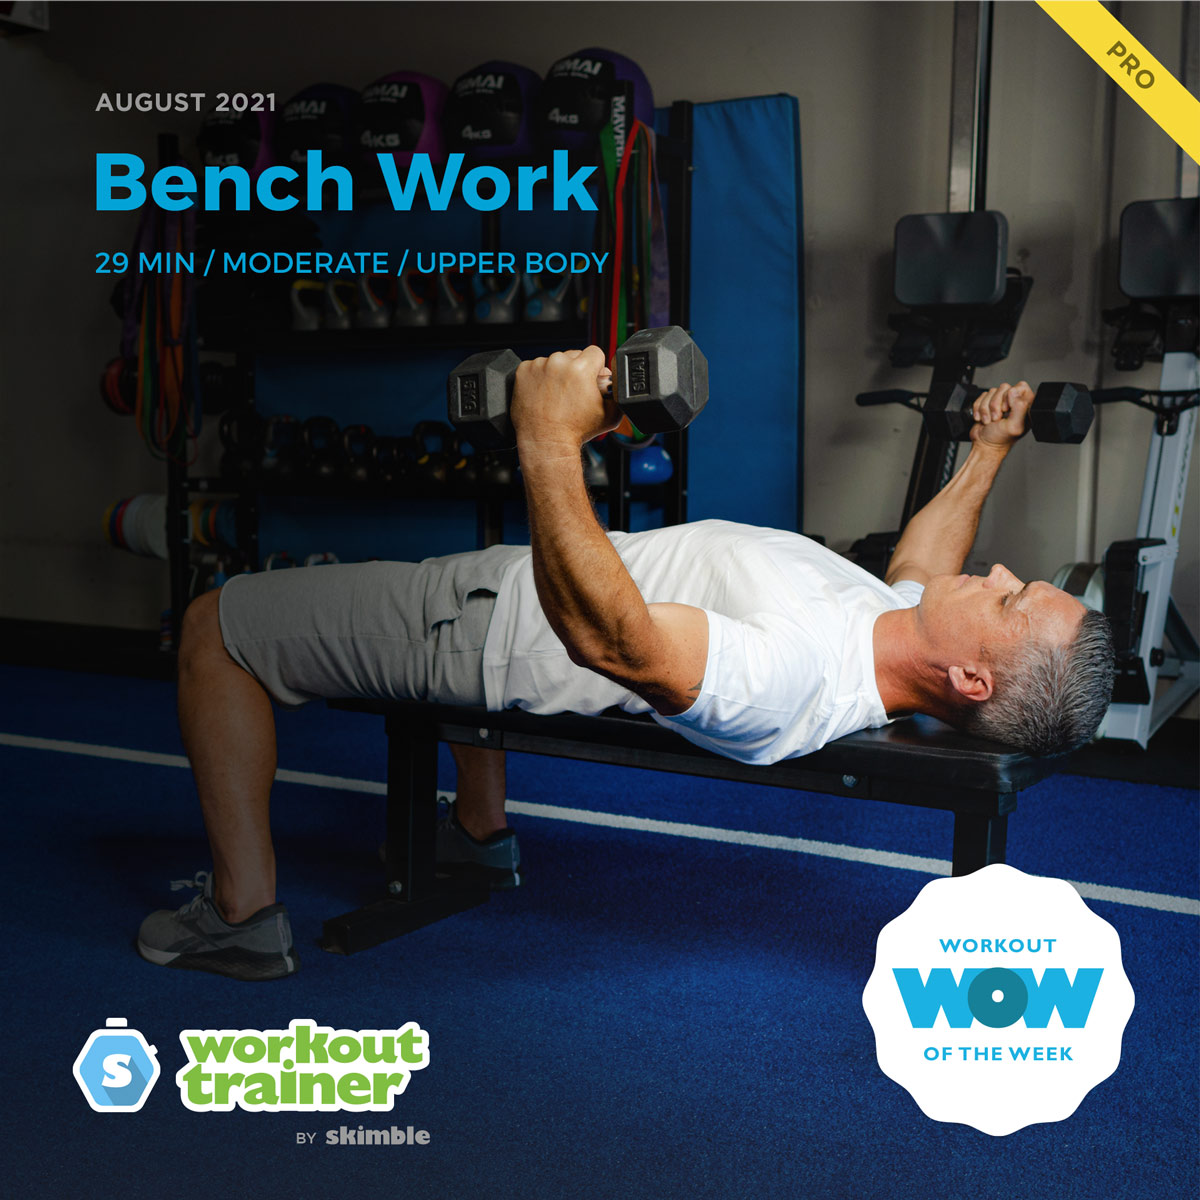 Male CrossFit Trainer demonstrating Dumbbell Fly on Bench